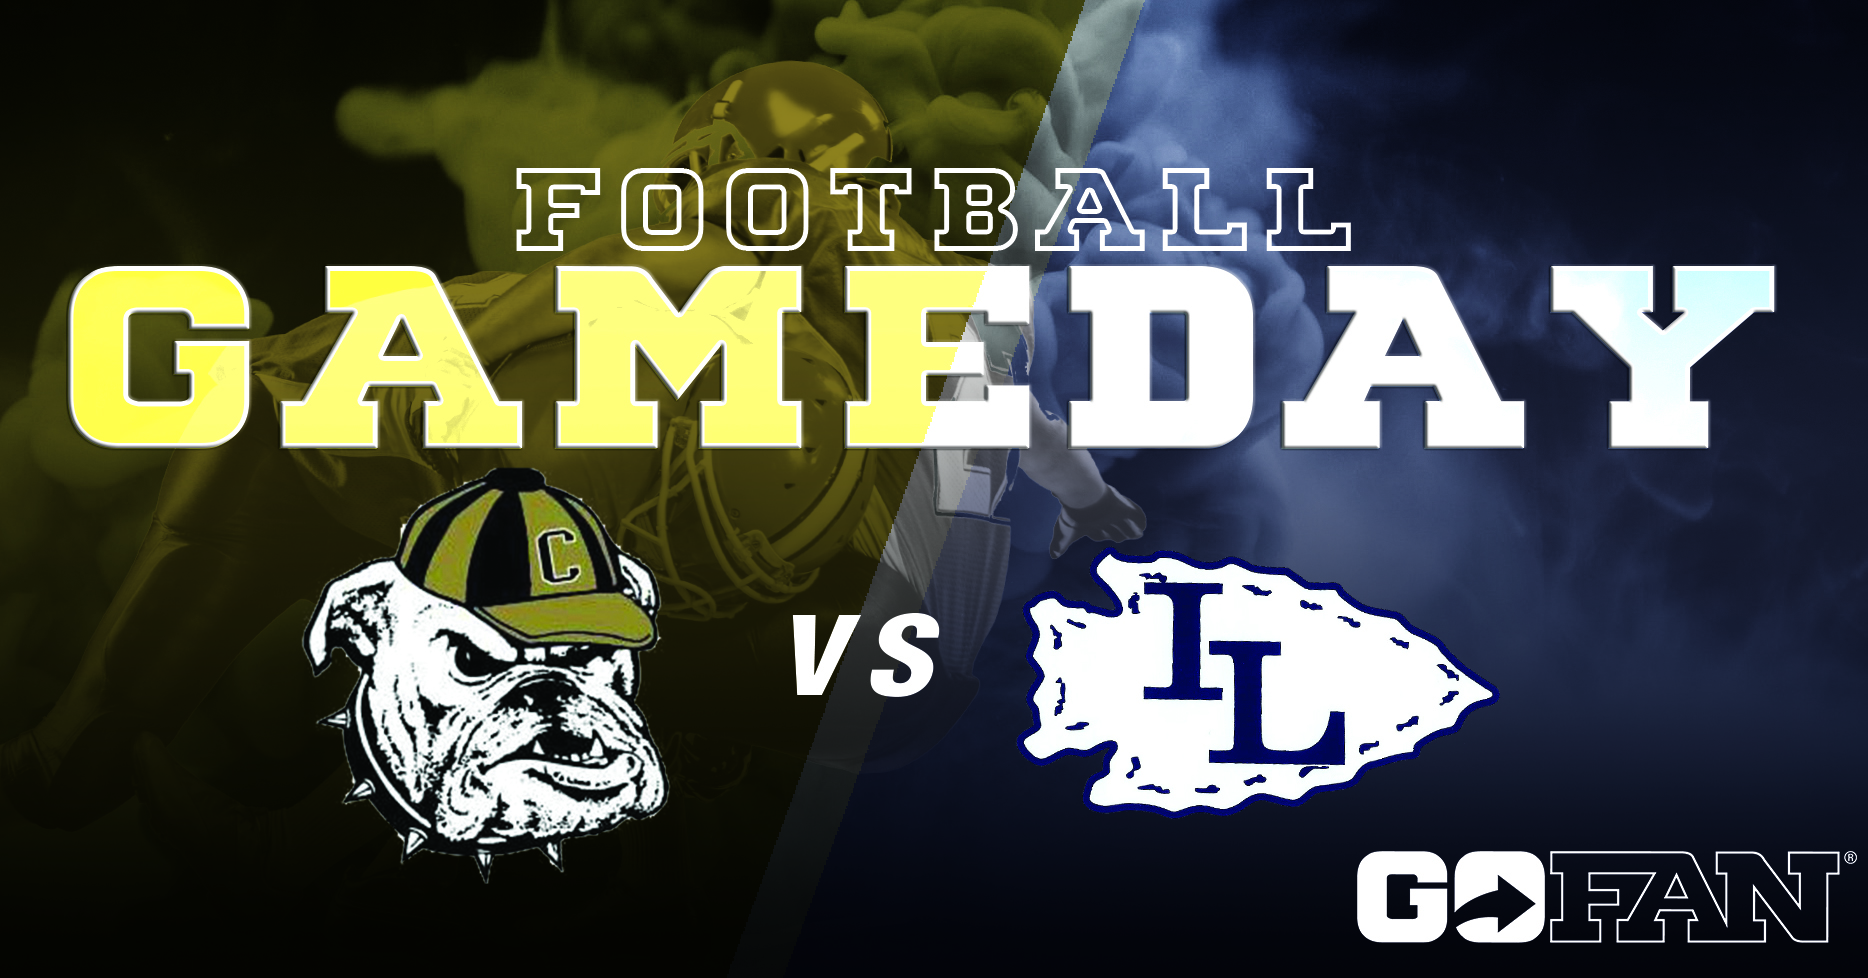 Purchase Camden  vs. Indian Land tickets online